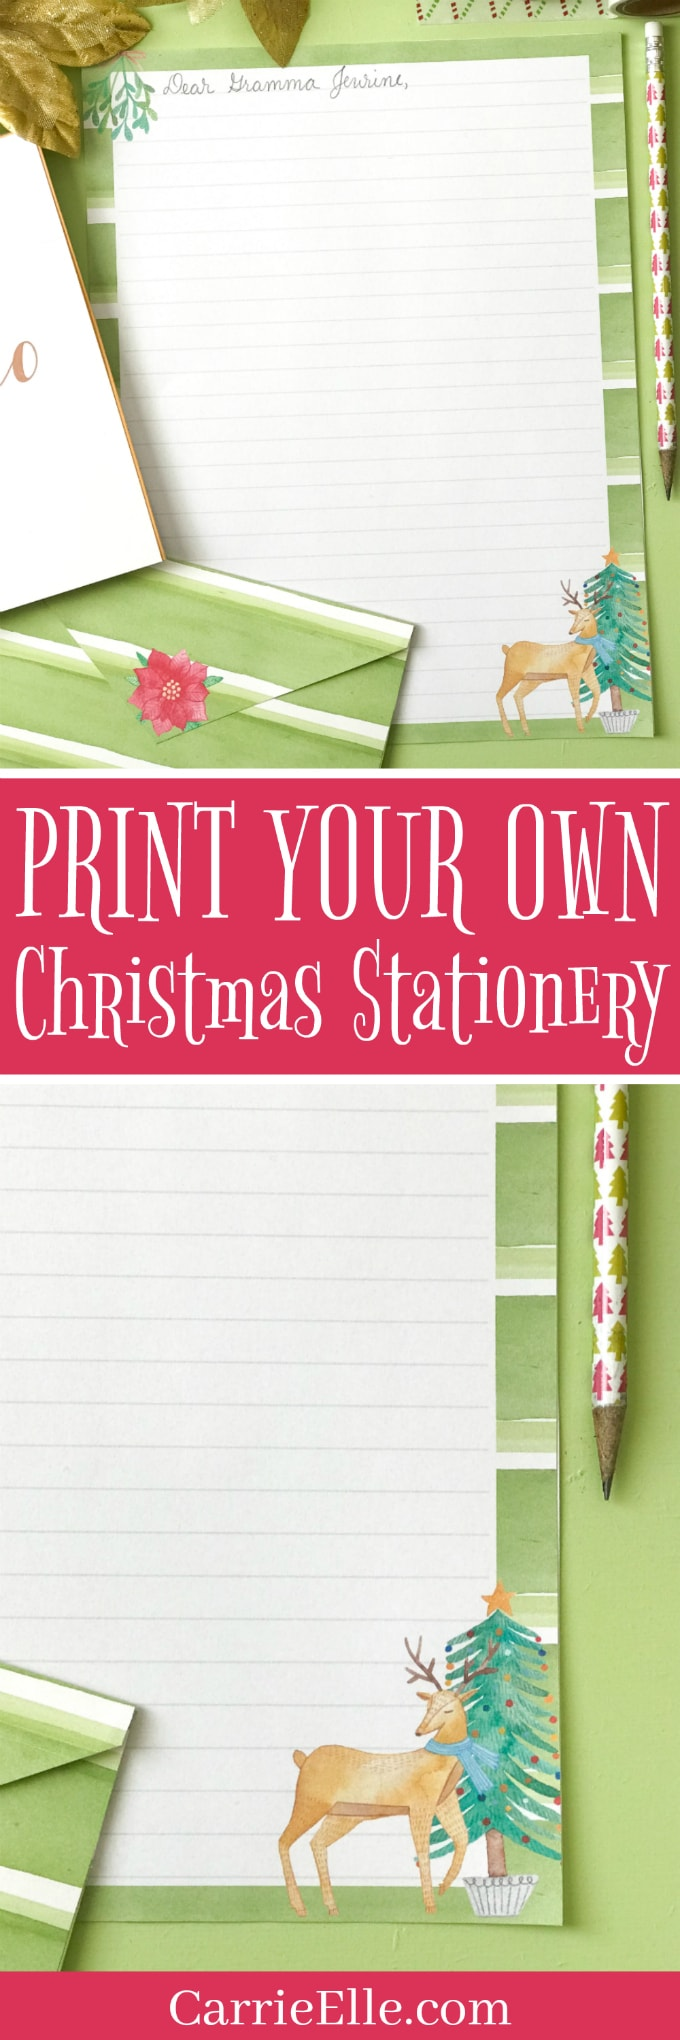 Printable Stationery Christmas